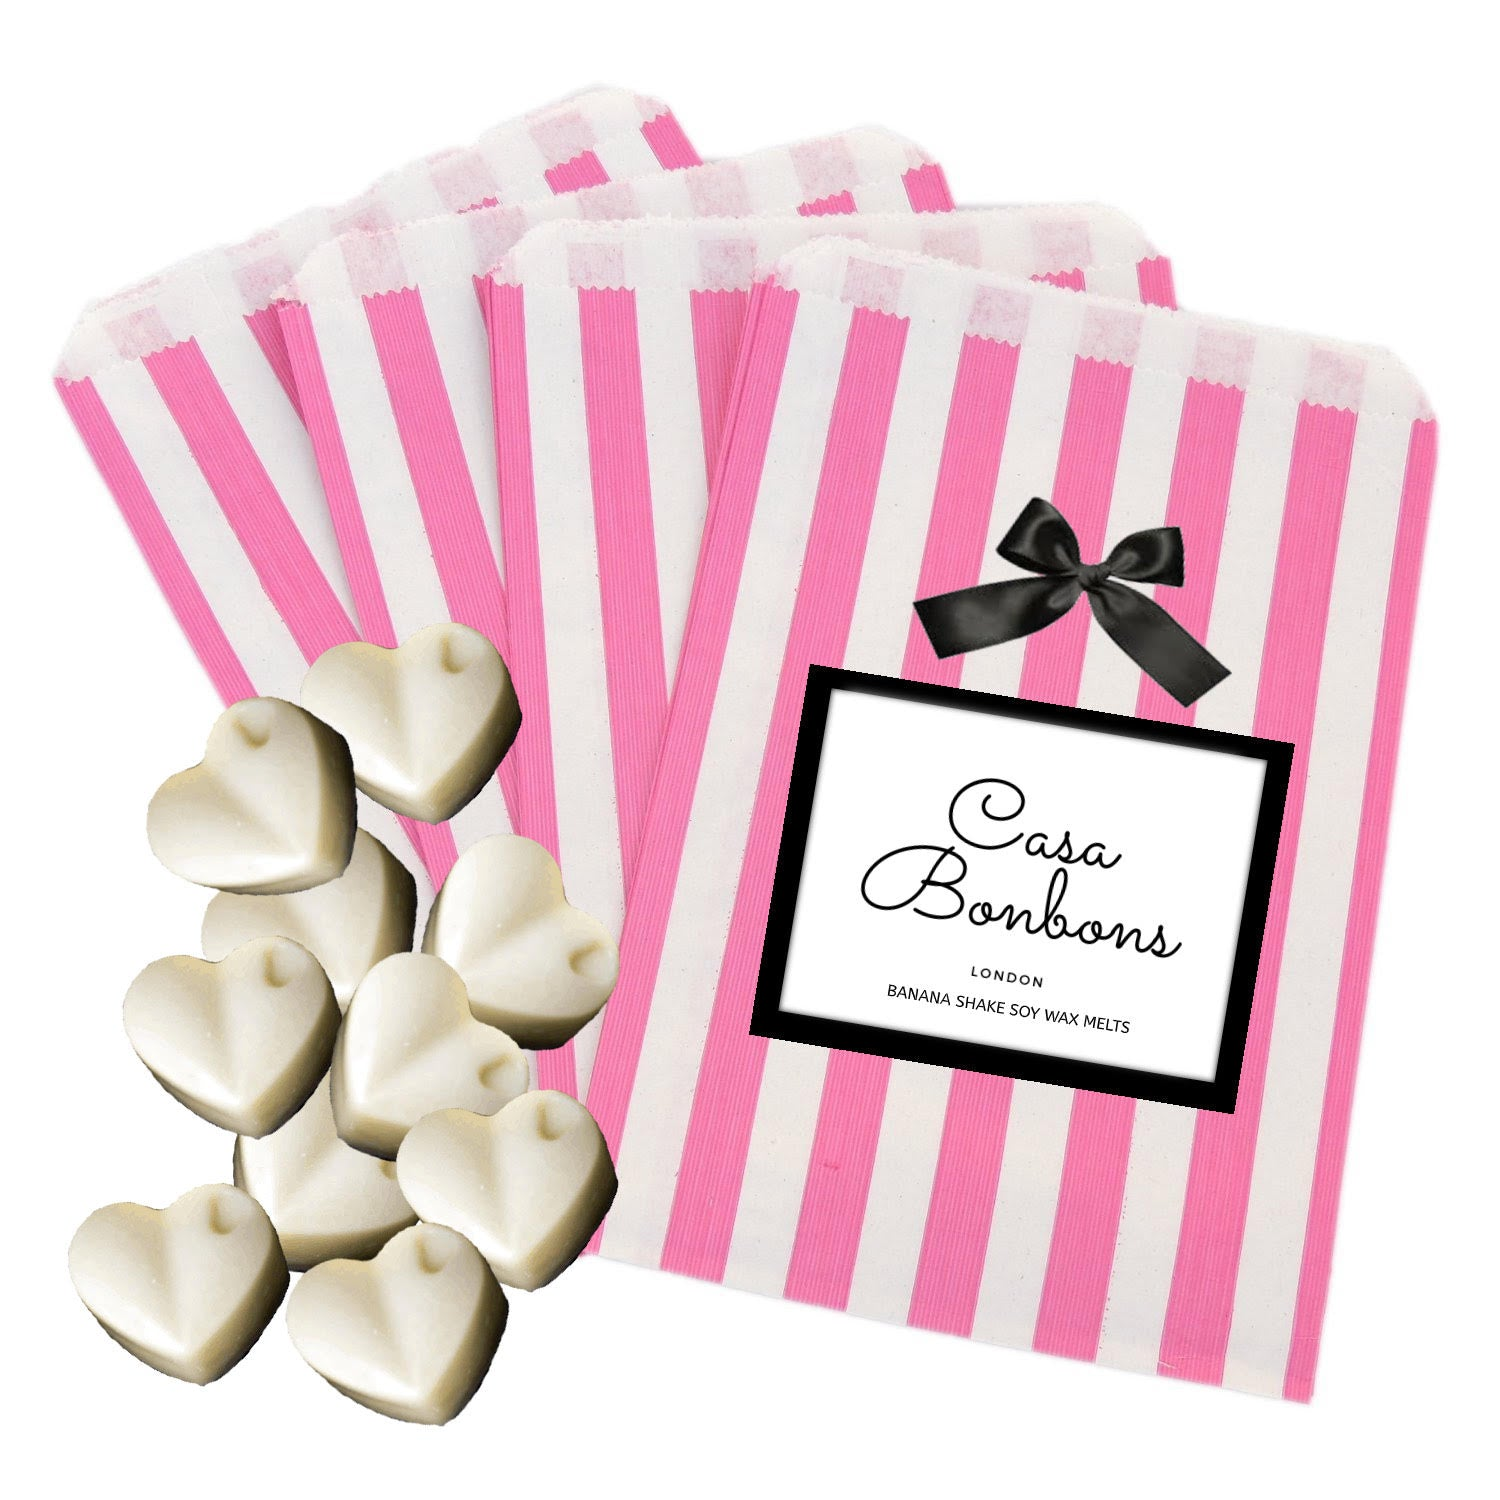 Banana Scented Soy Wax Melts (10 hearts) Preorder now for delivery December 15th - natoorio